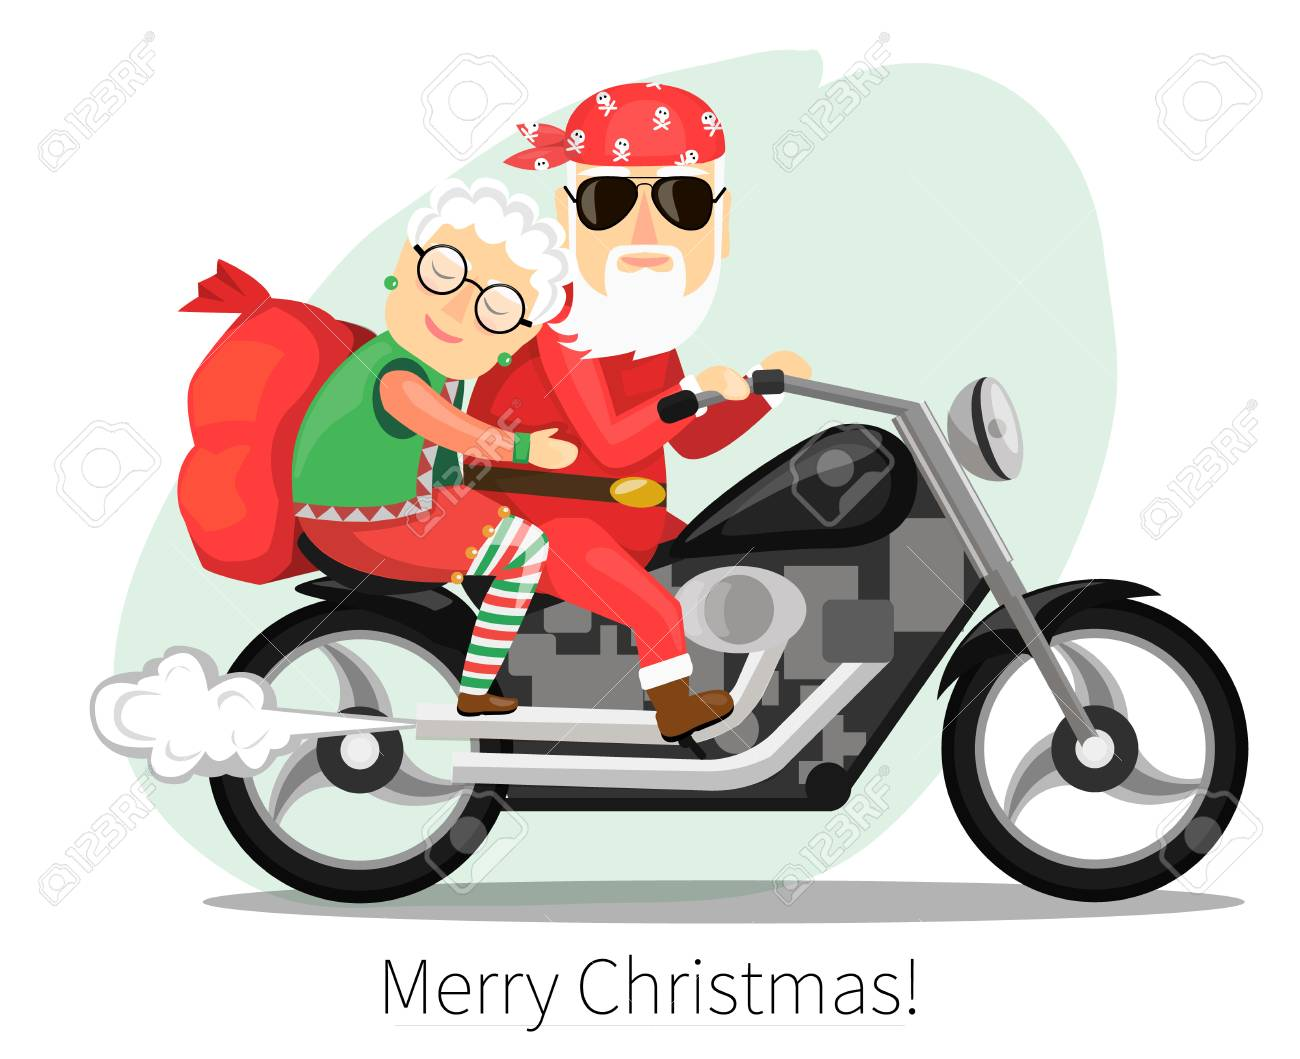 Santa Claus and Mrs. riding on a steep motorcycle.